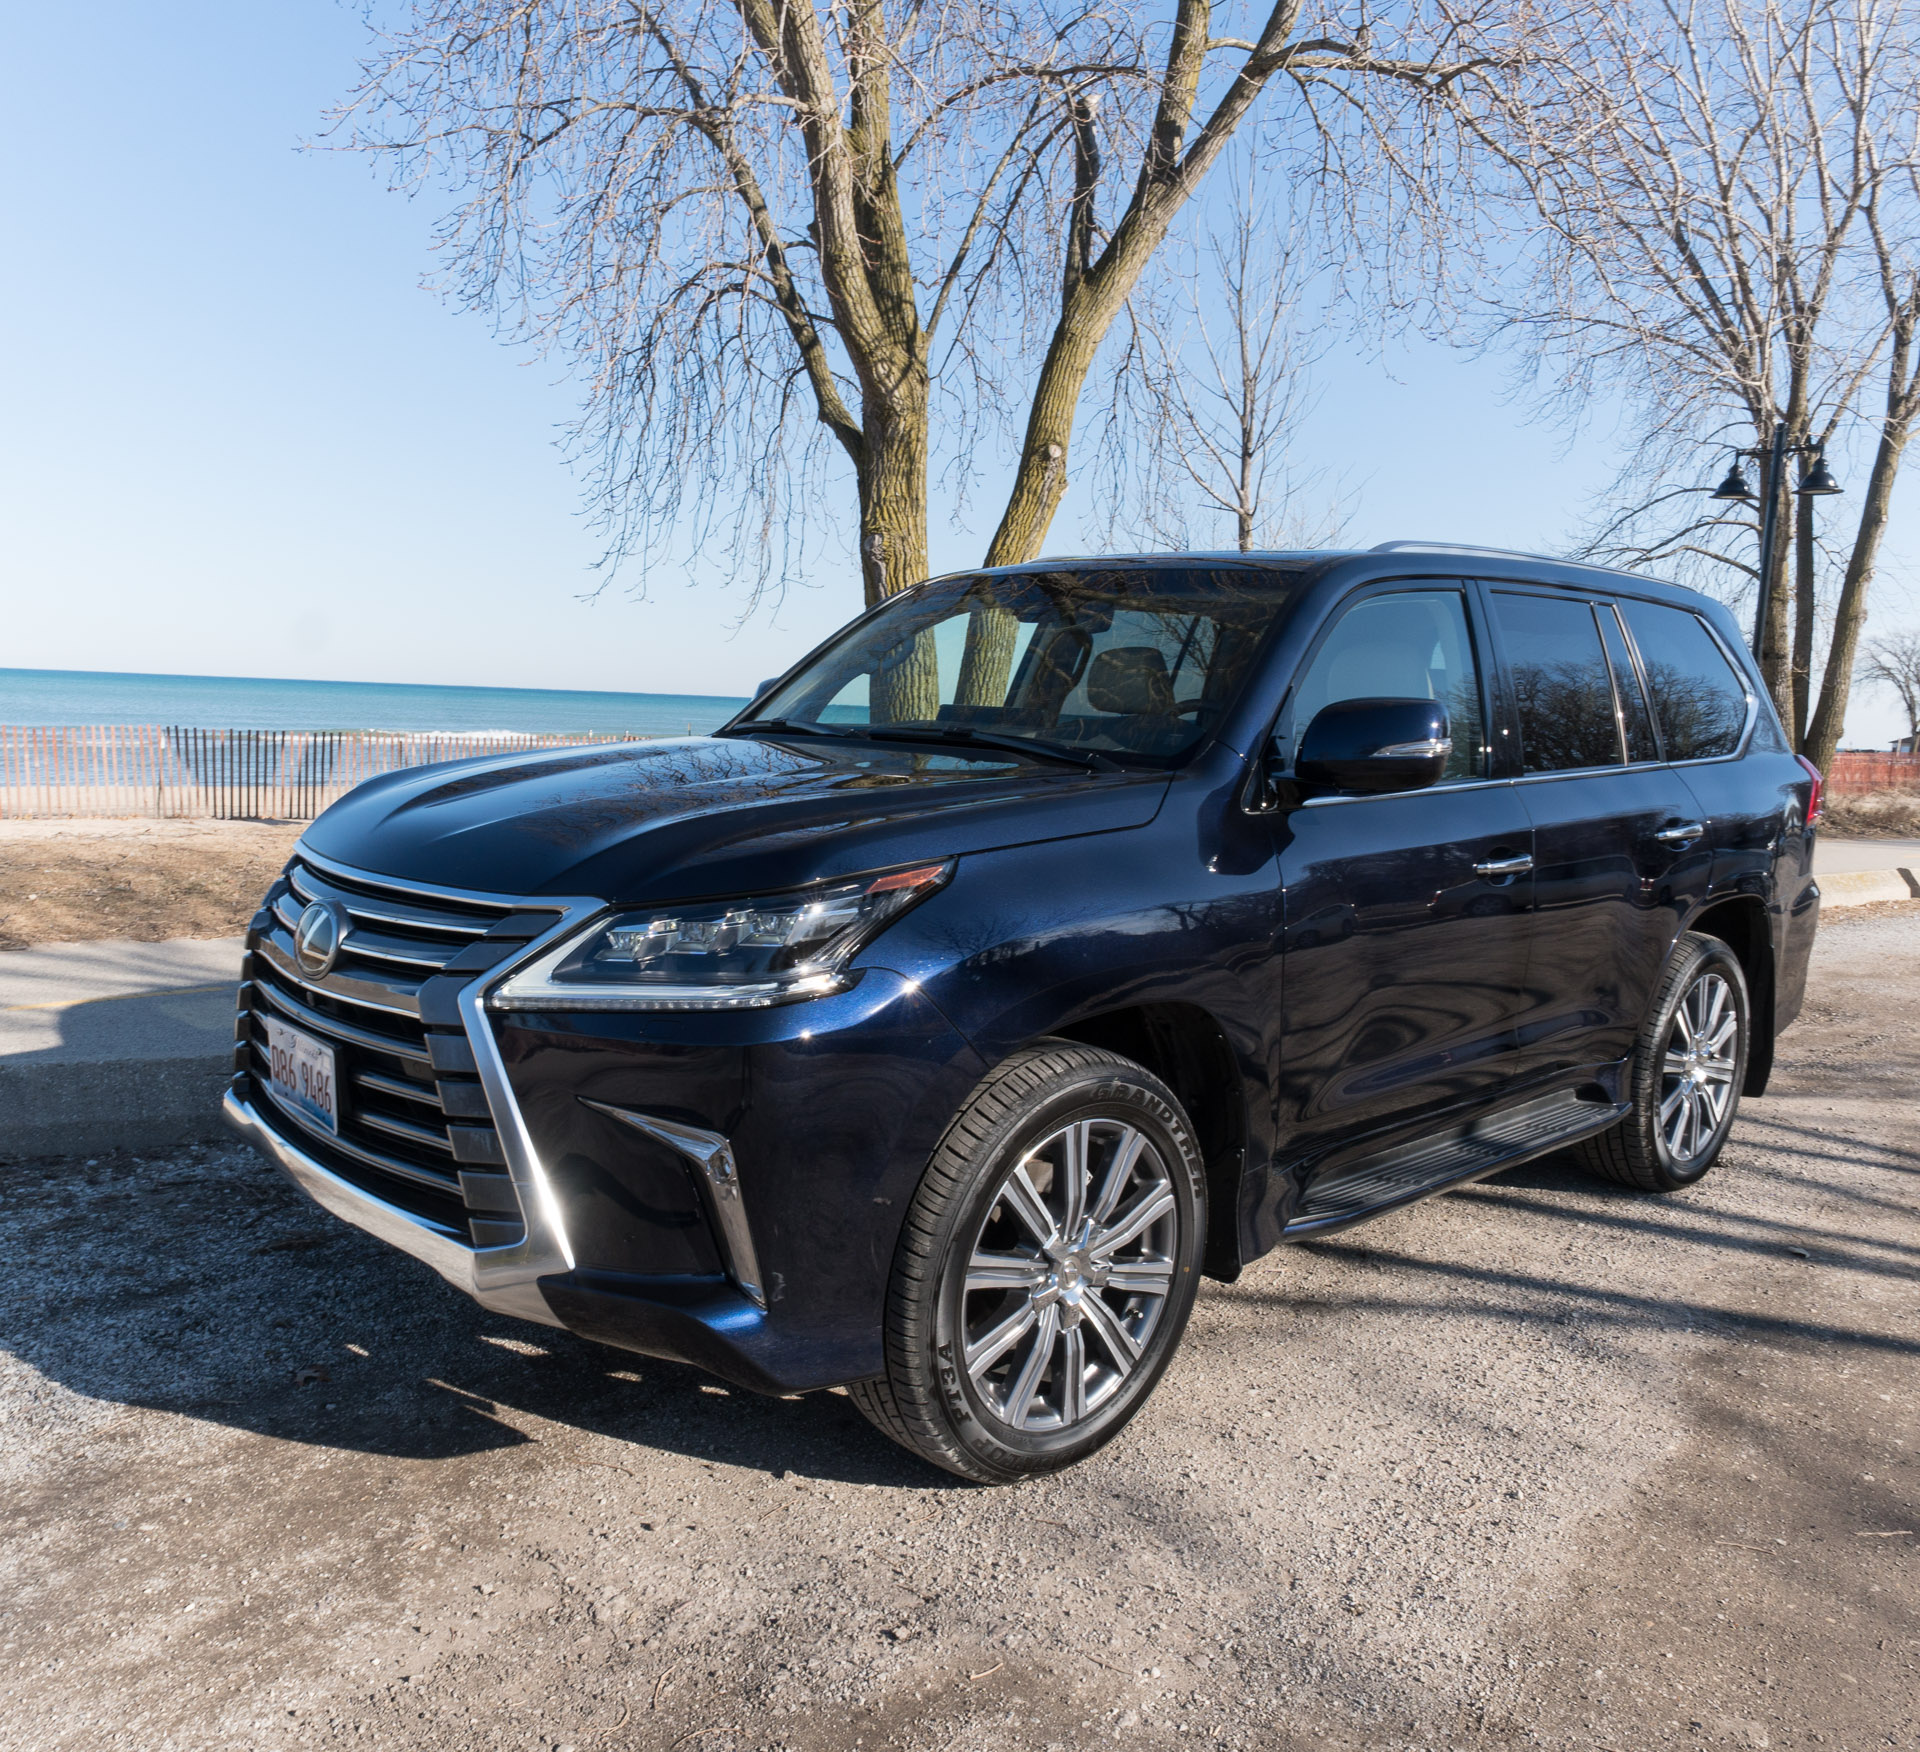 Lexus lx570 photo - 6